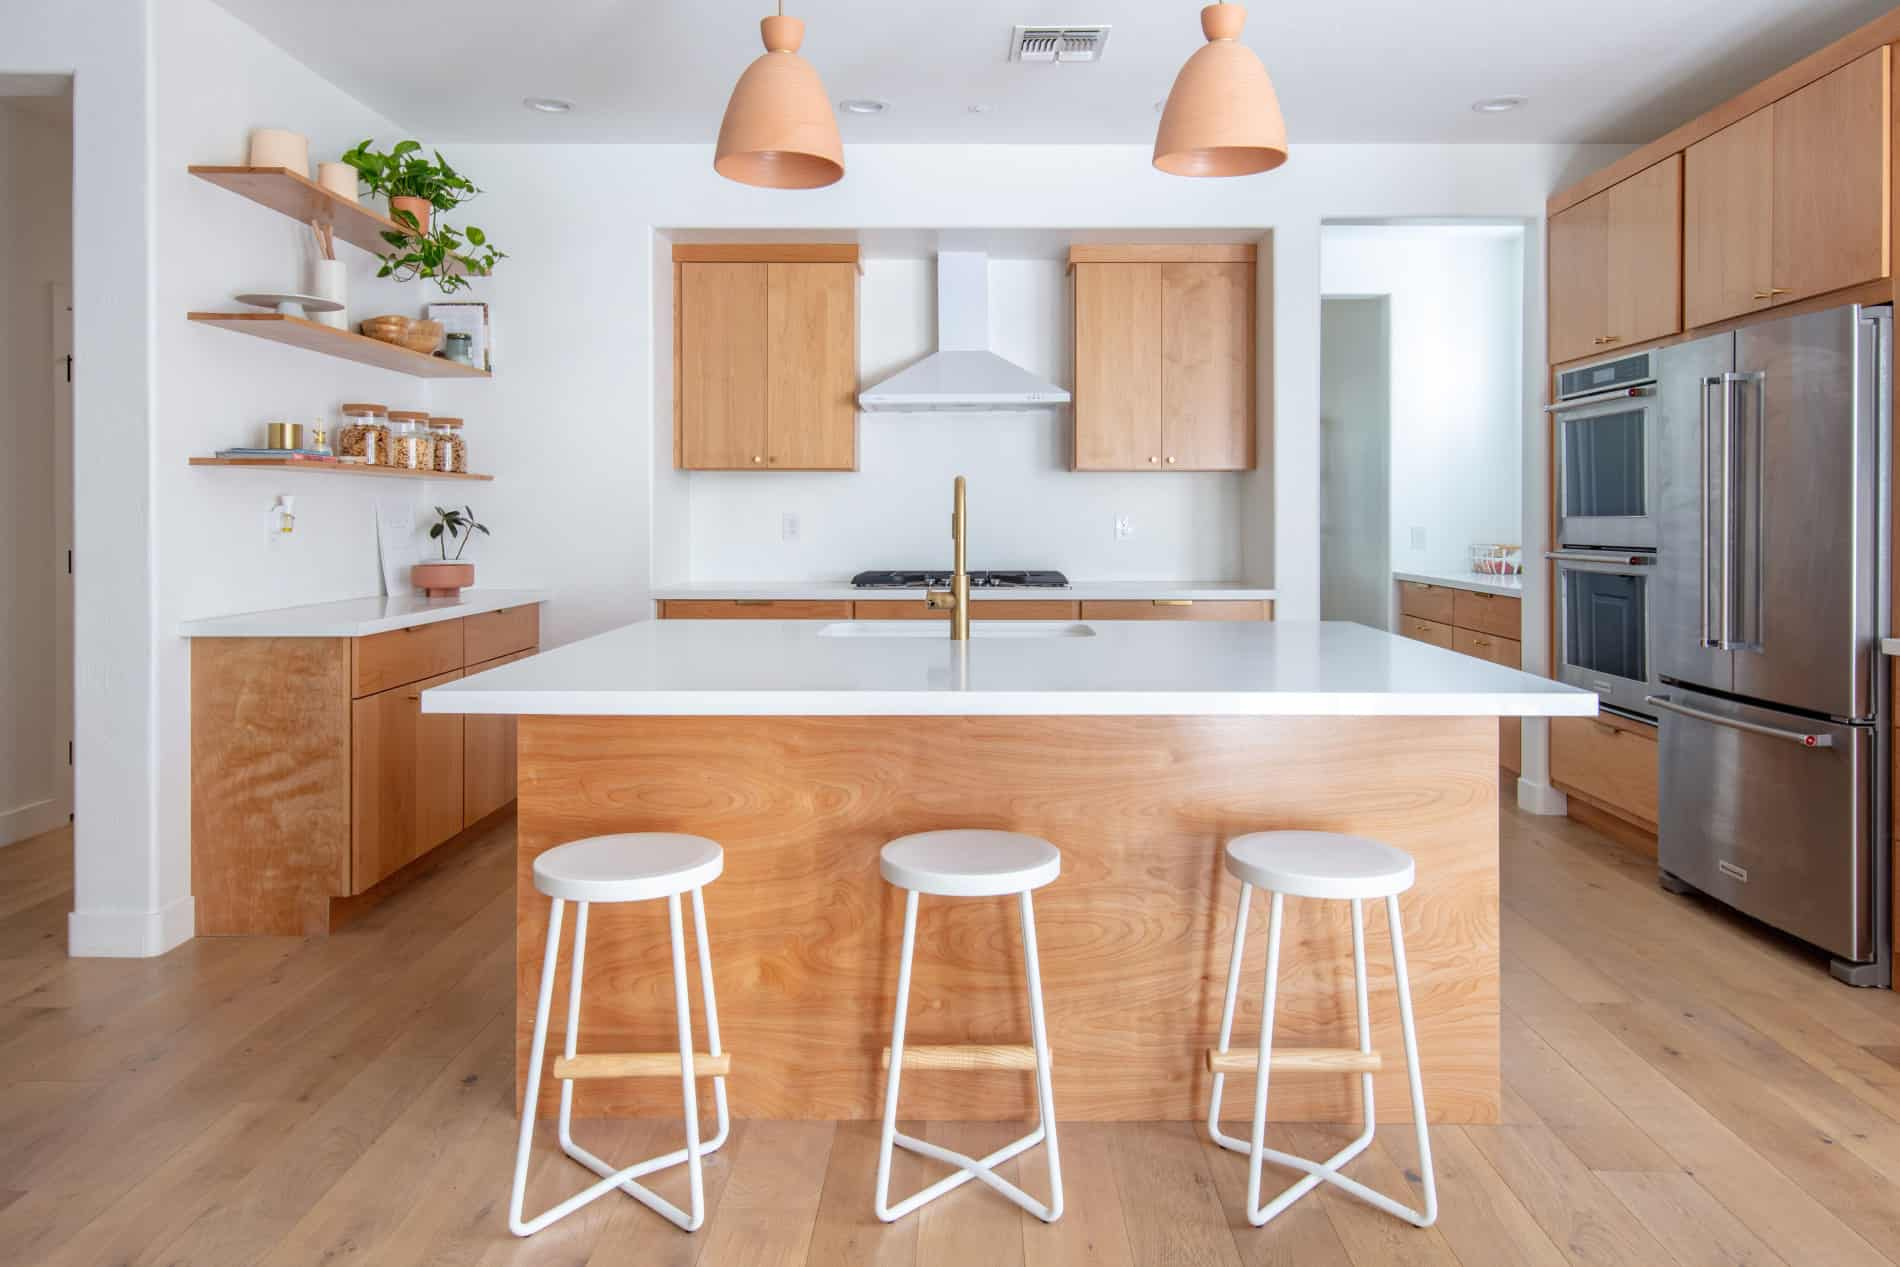 How to clean kitchen cabinets without damaging them